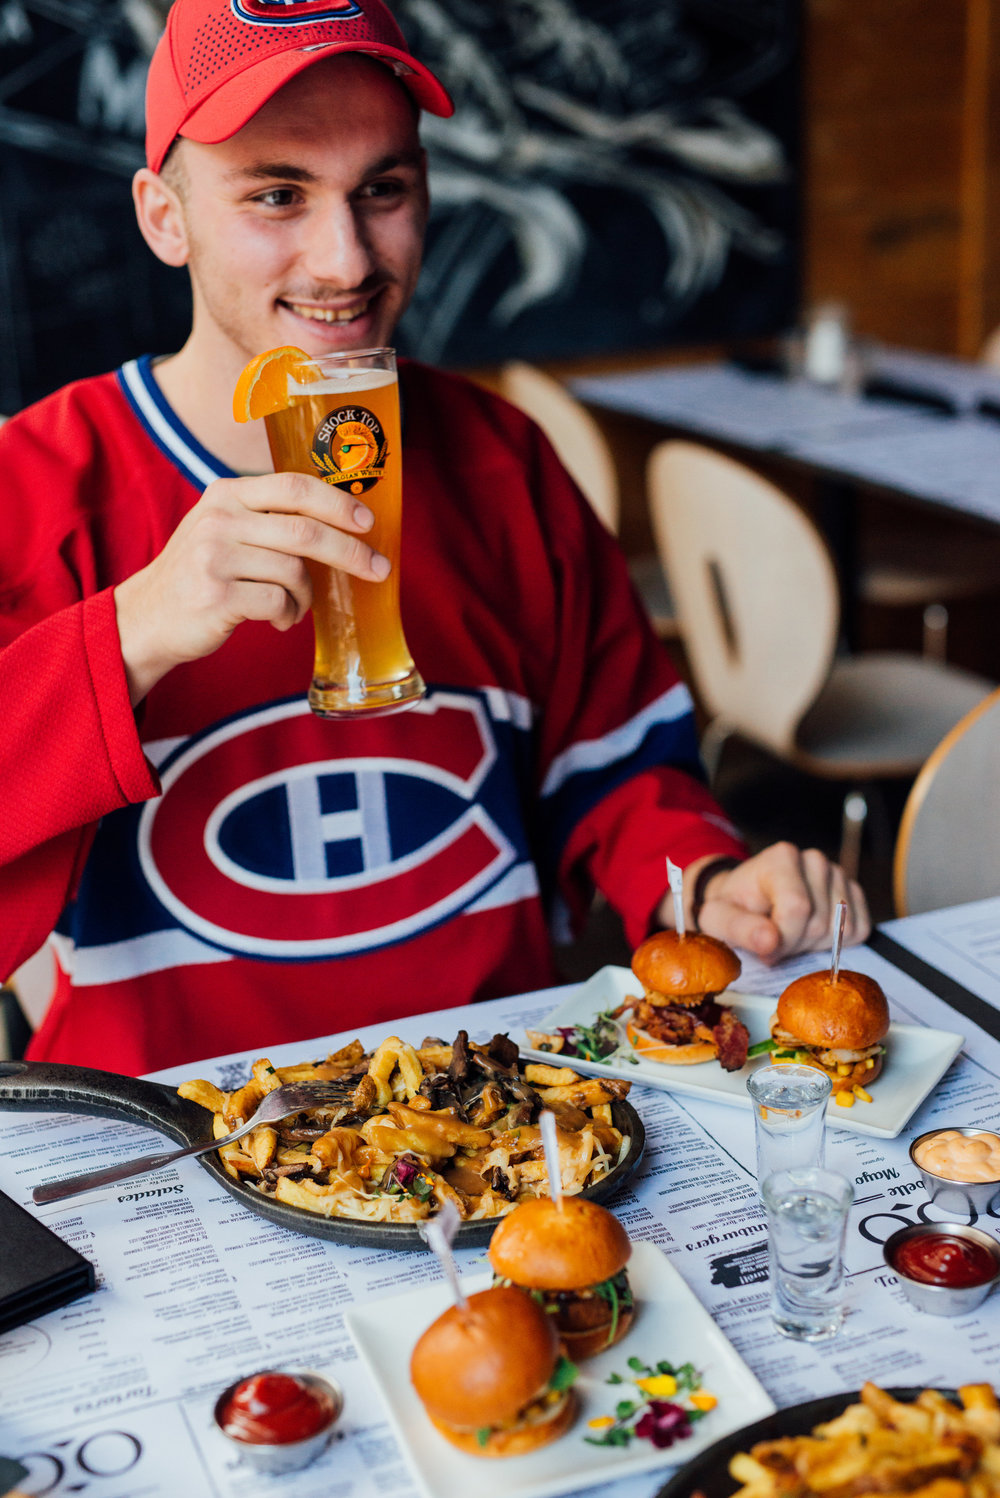 Match Canadiens TABOO Cuisine Rebelle